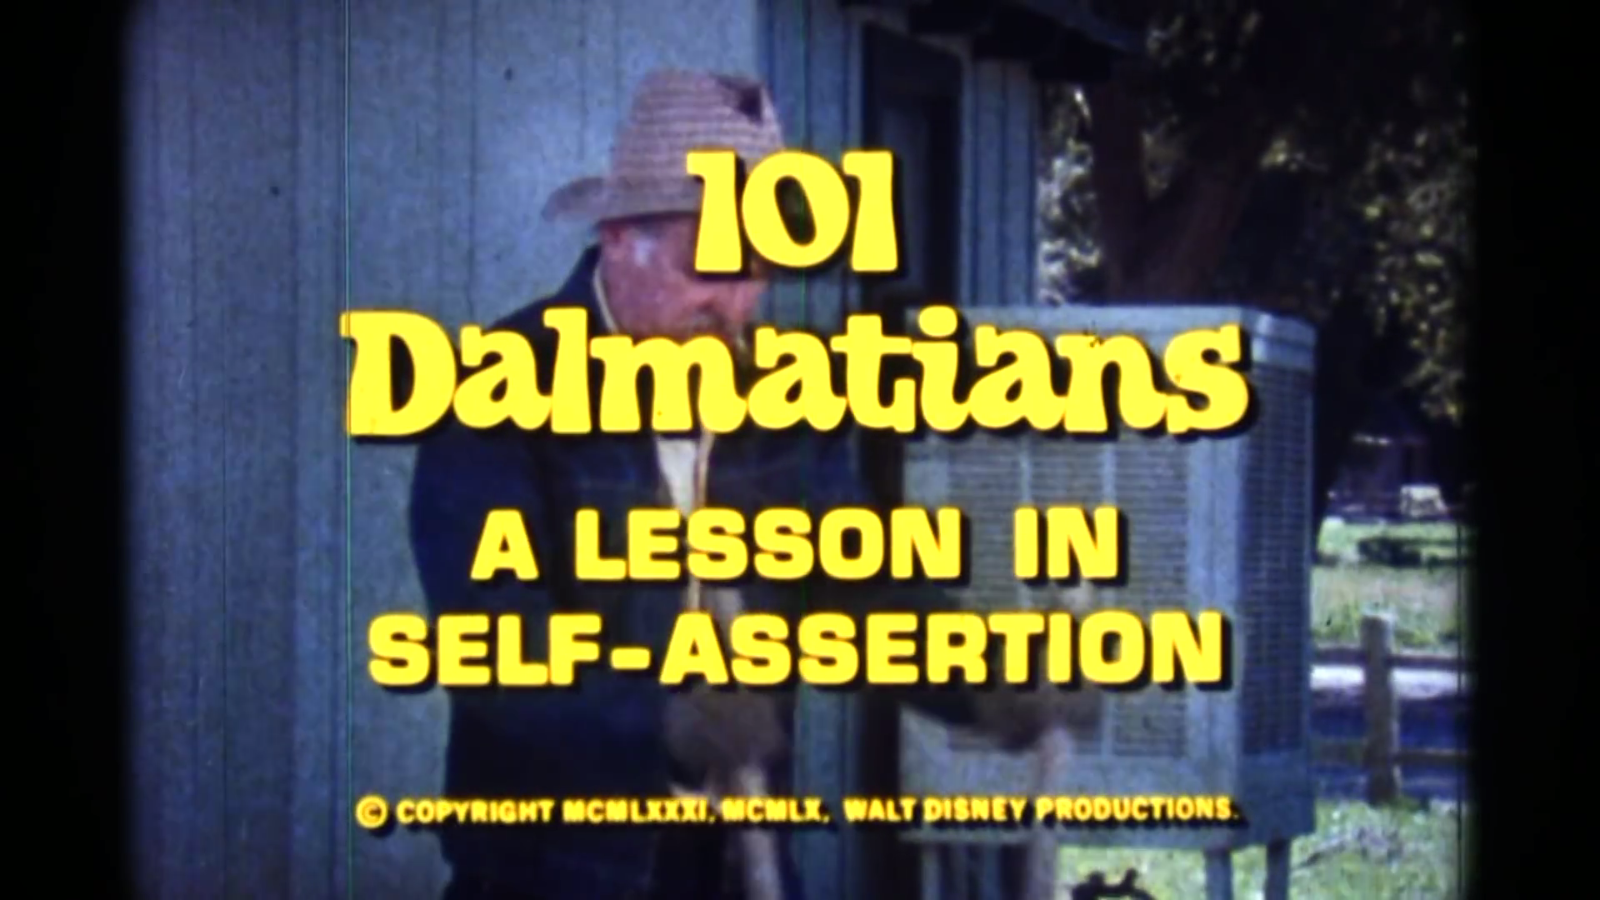 101 Dalmatians: A Lesson in Self-Assertion